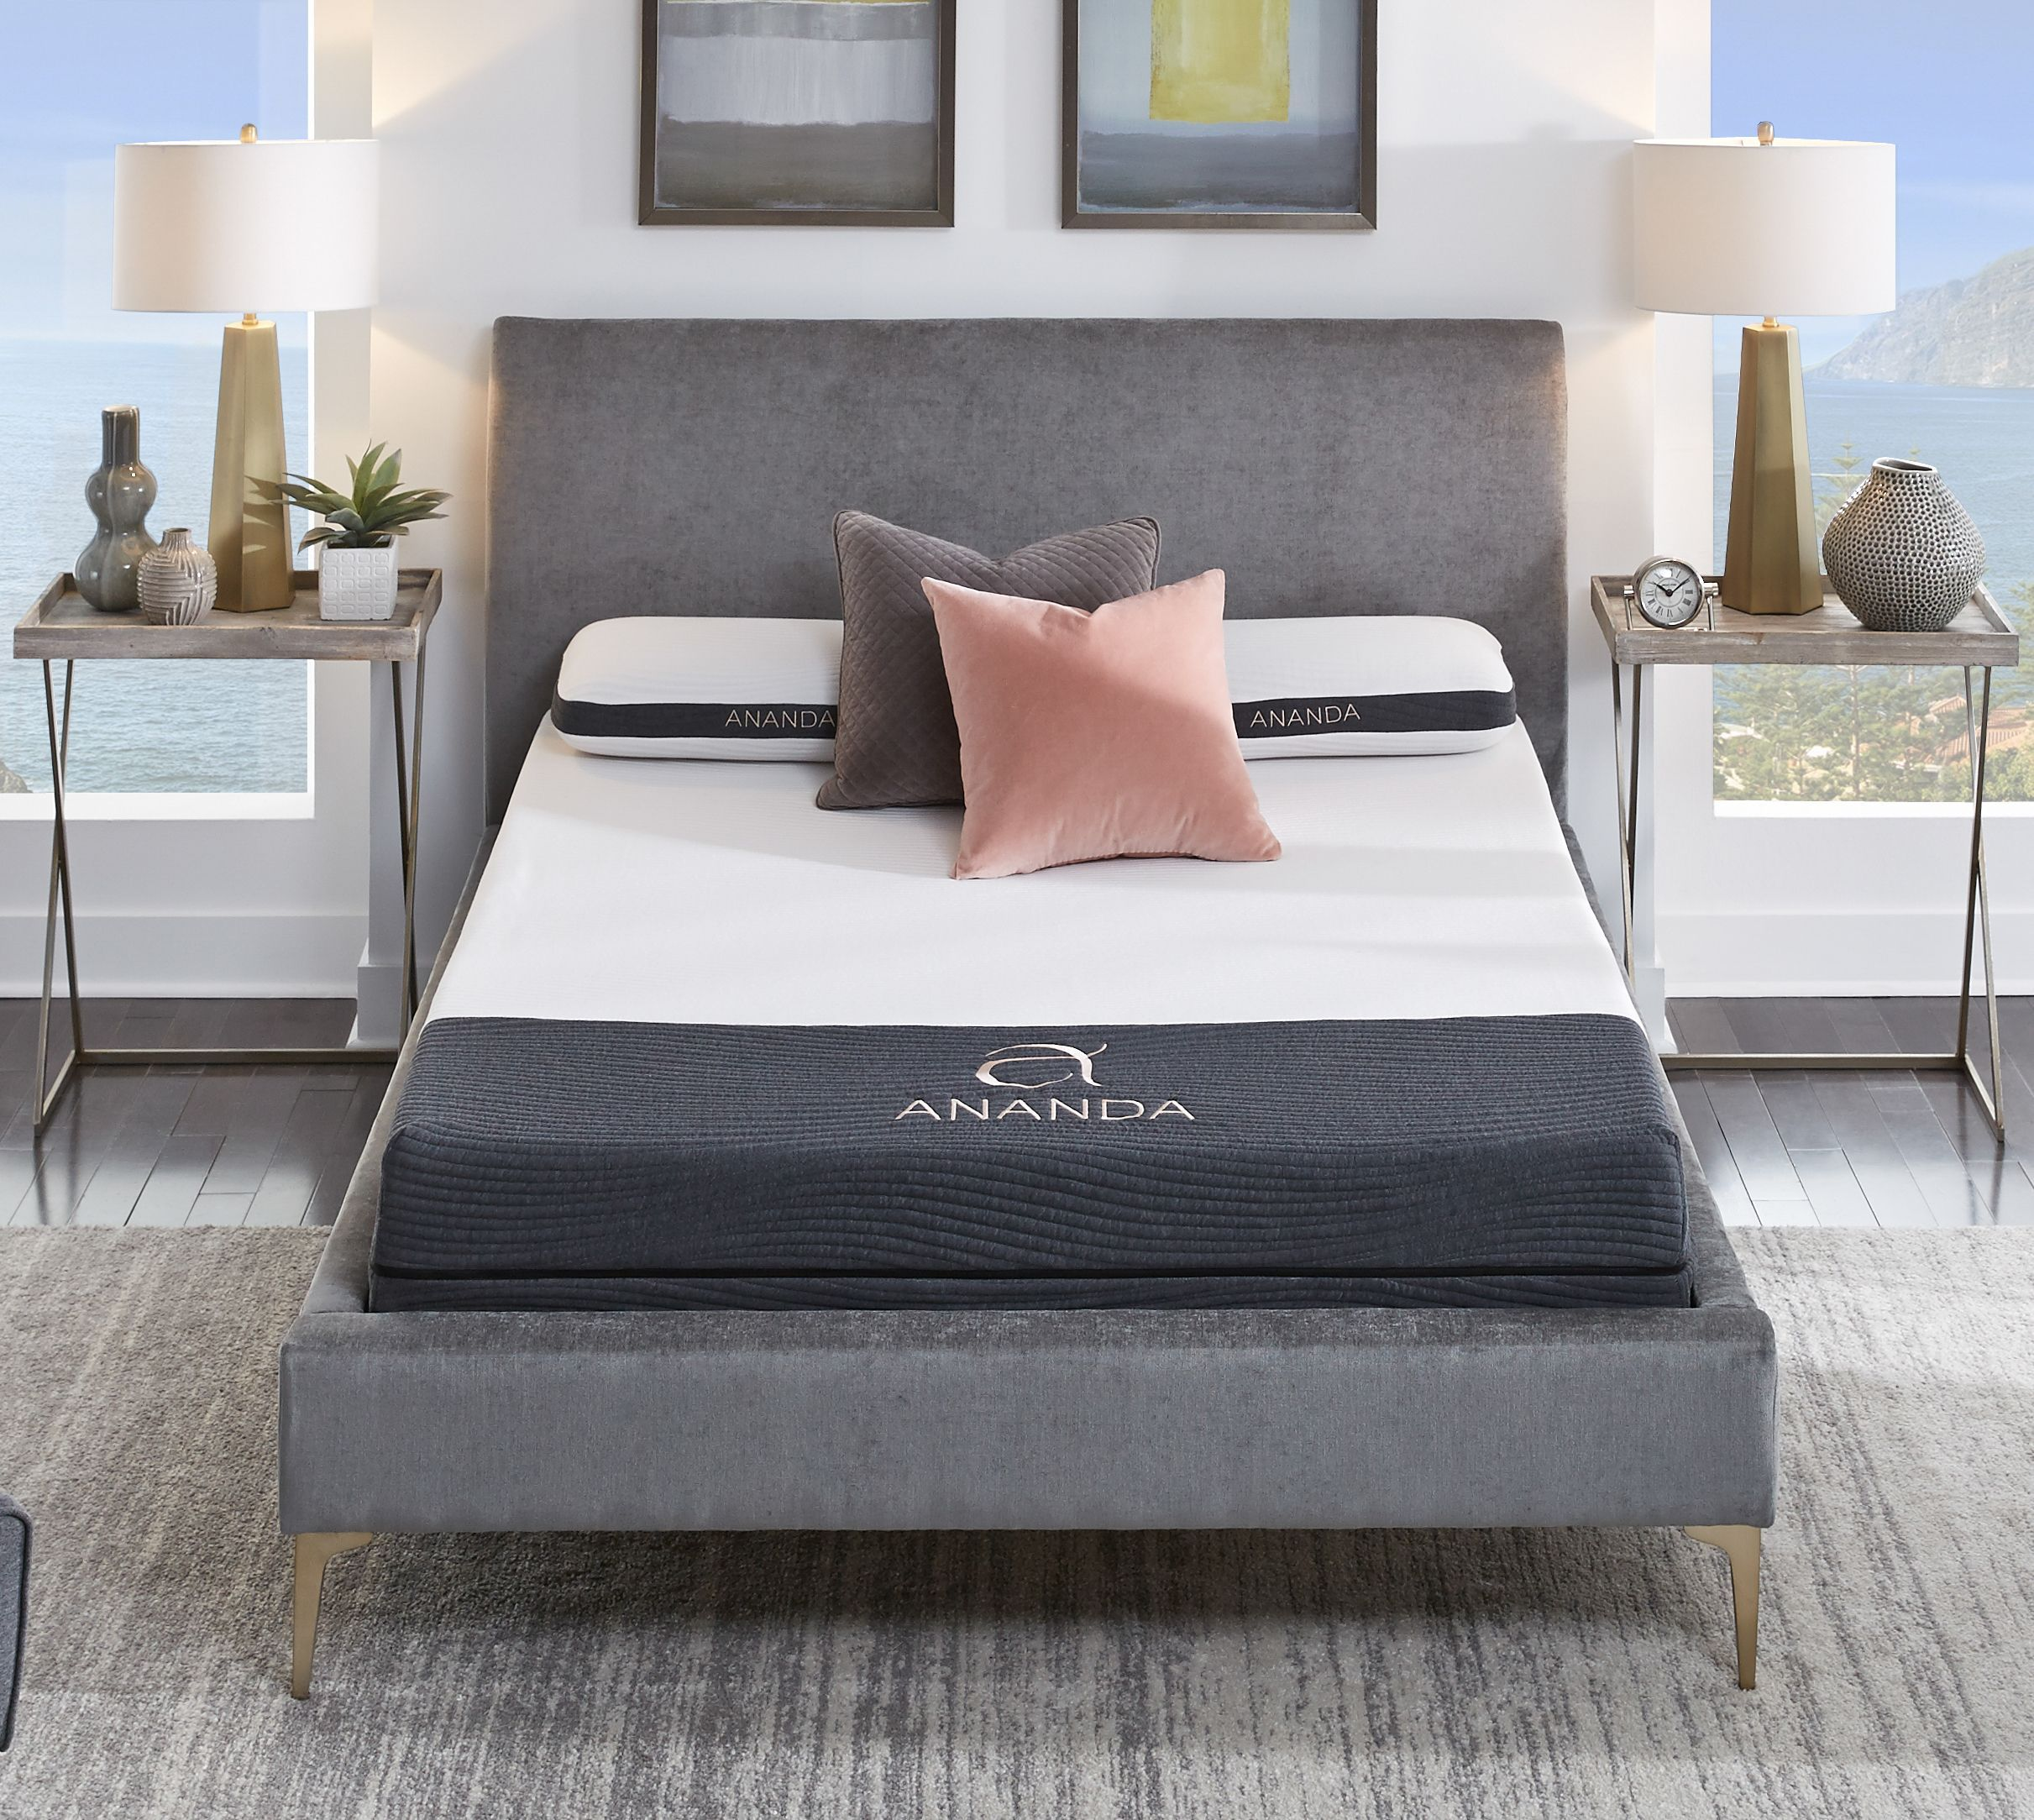 Restore The Energy And Balance In Your Life Get An Ananda Mattress And Get The Rest You Deserve 699 For A Queen Financing Mattress Throw Blanket Home Decor